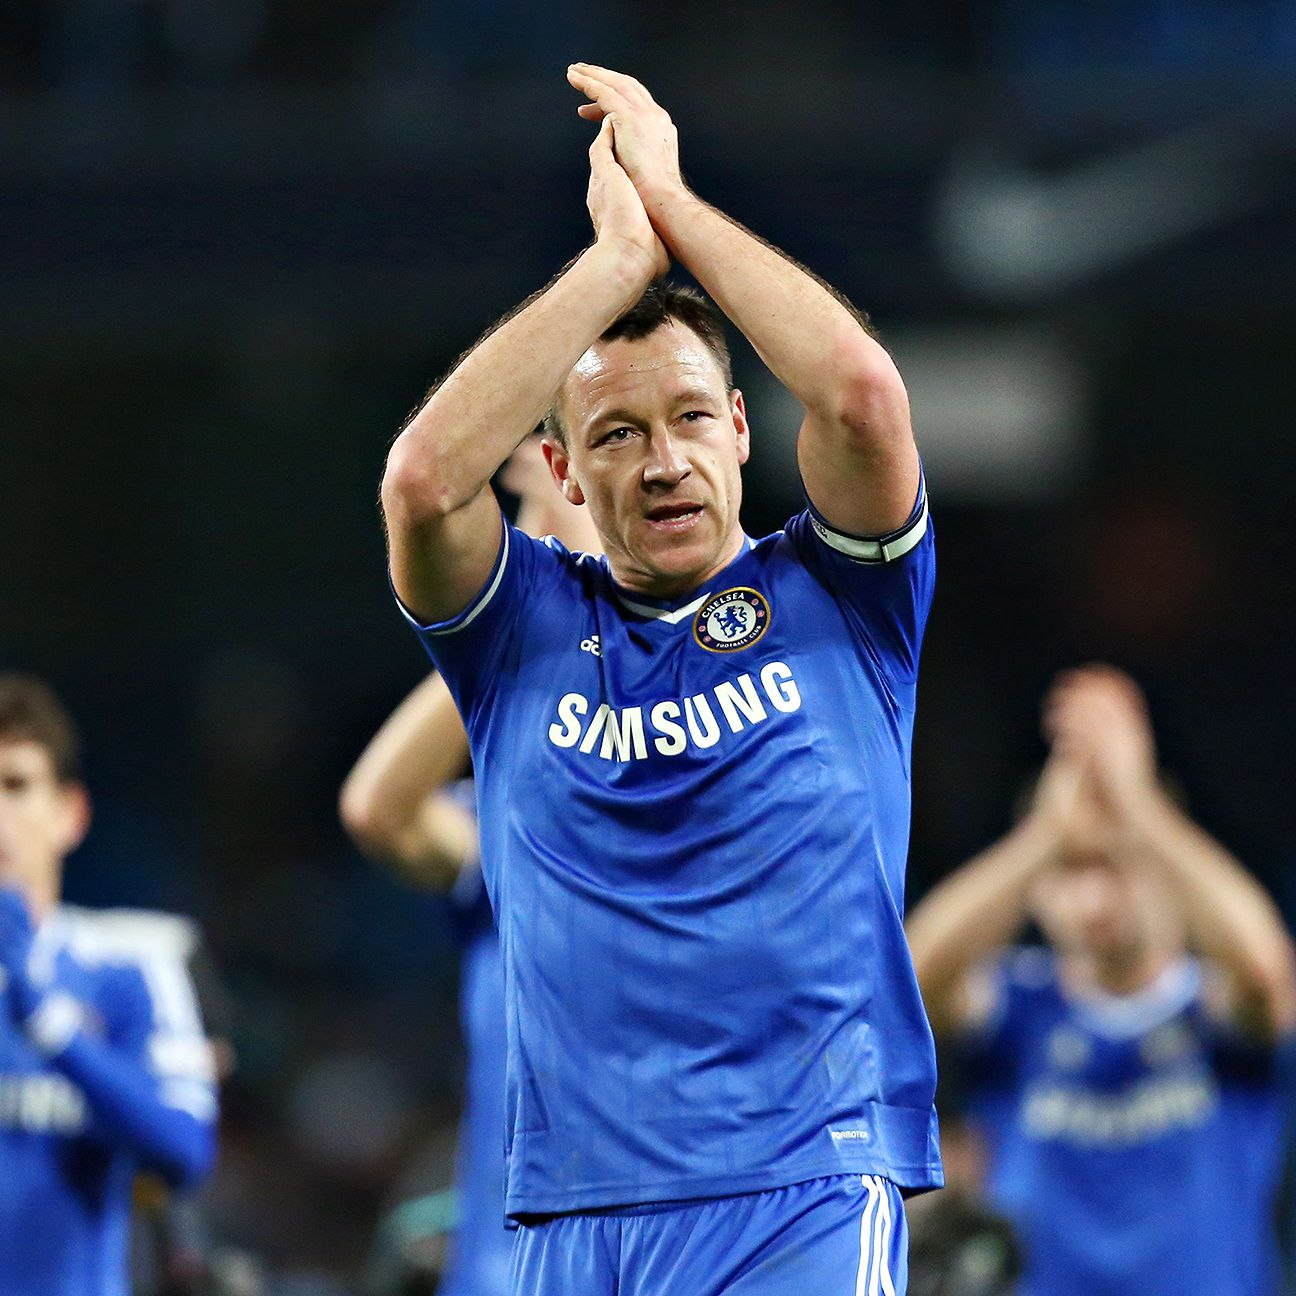 John Terry has led a Chelsea defence that has conceded just 26 Premier League goals this season.